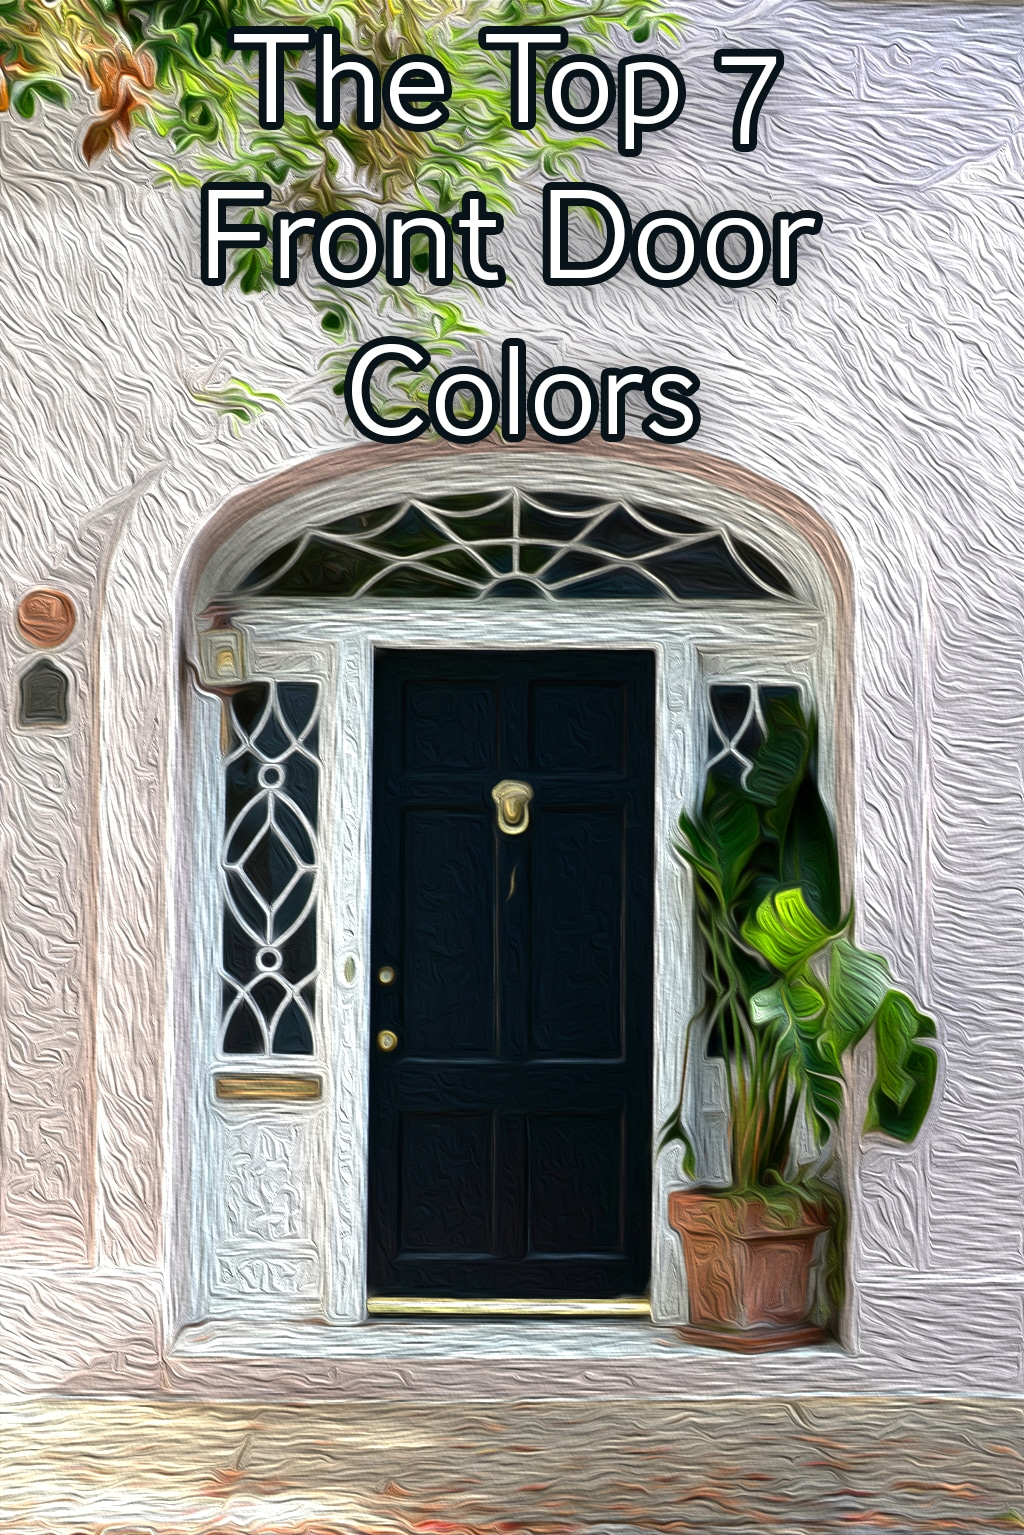 The 7 best front door colors for 2018 rugh design - Popular front door colors ...